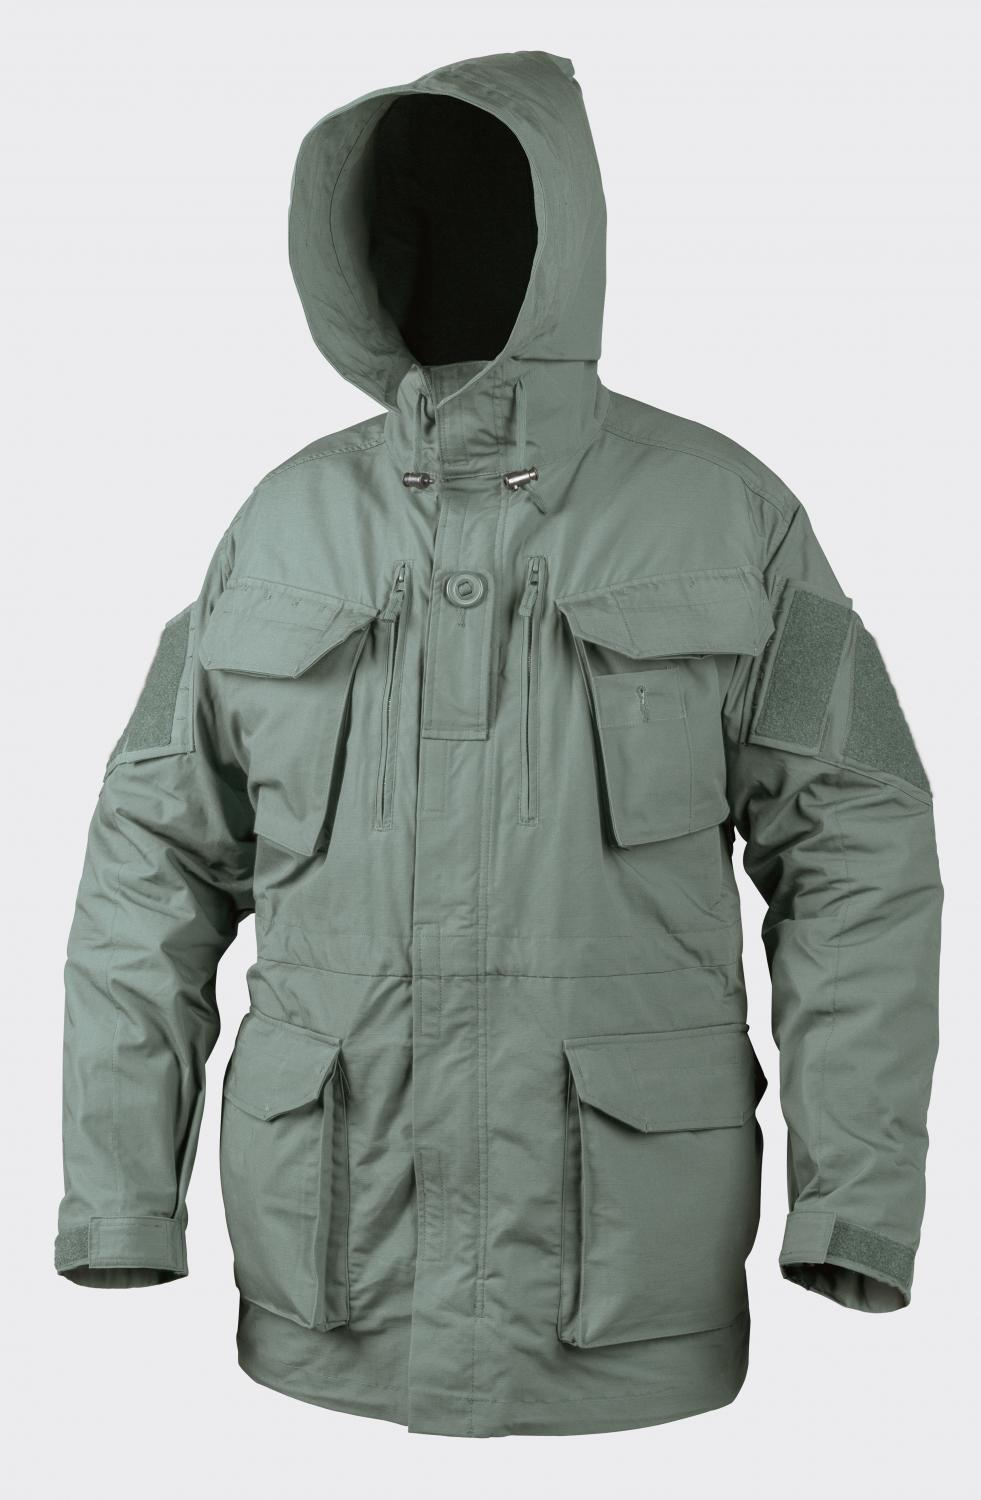 PCS (Personal Clothing System Smock) Olive Drab